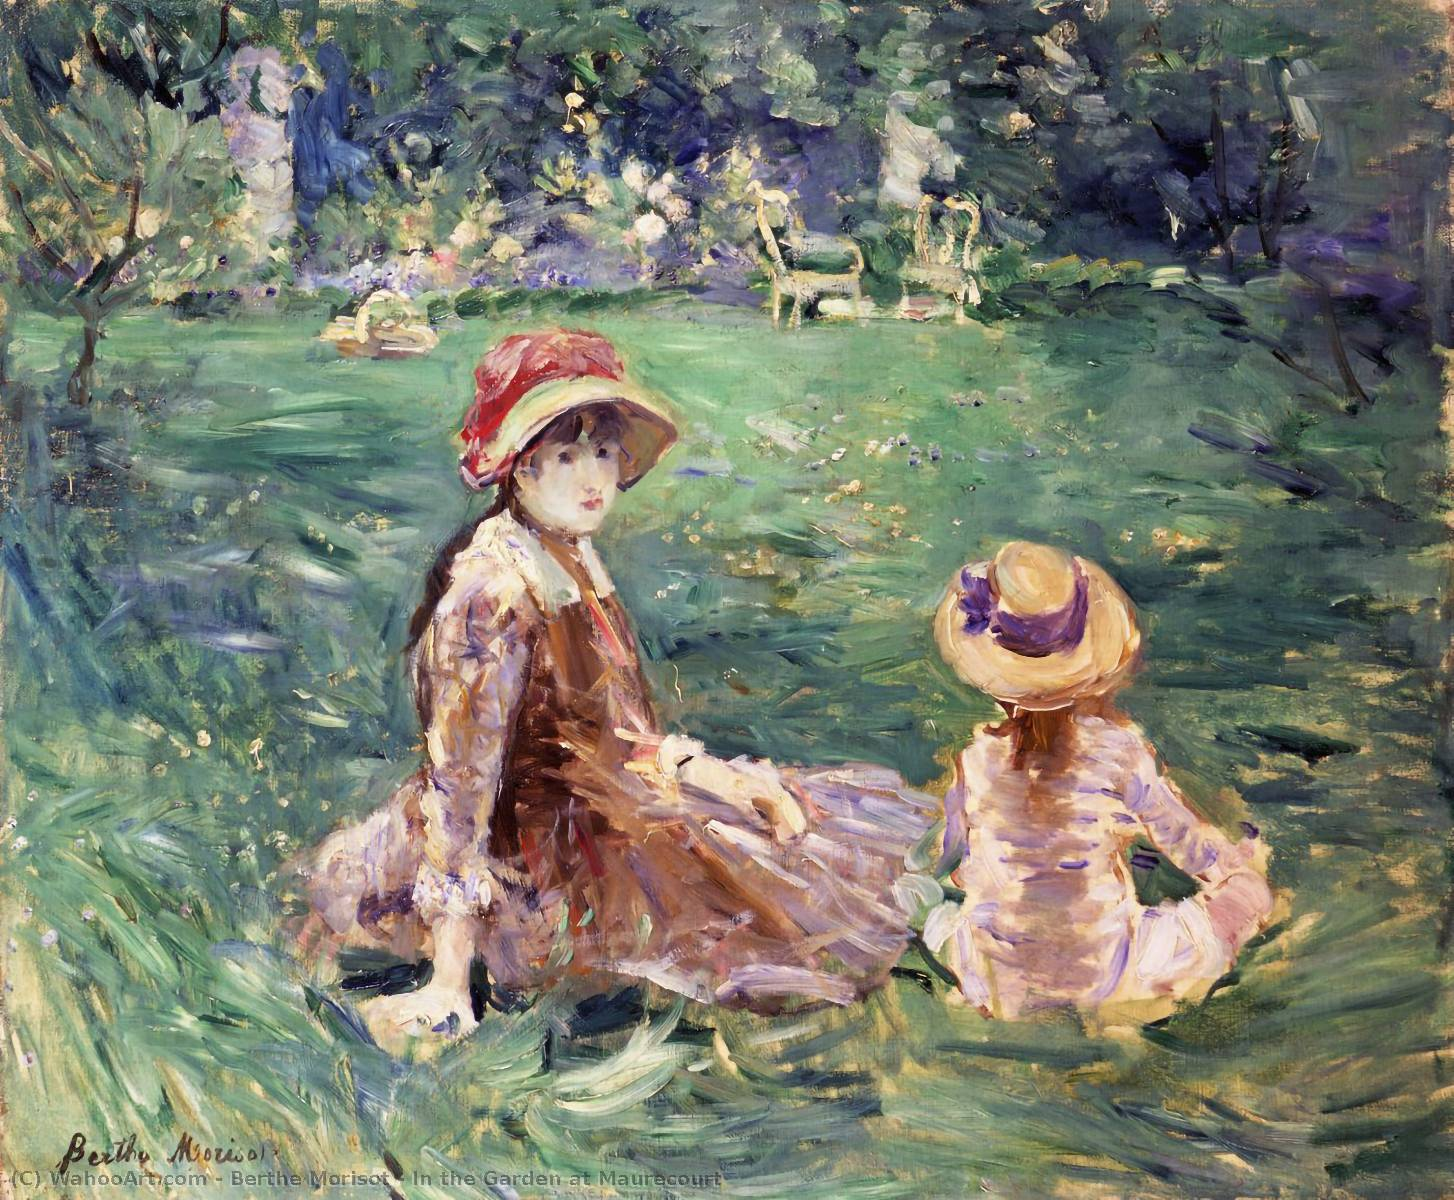 famous painting In the Garden at Maurecourt of Berthe Morisot